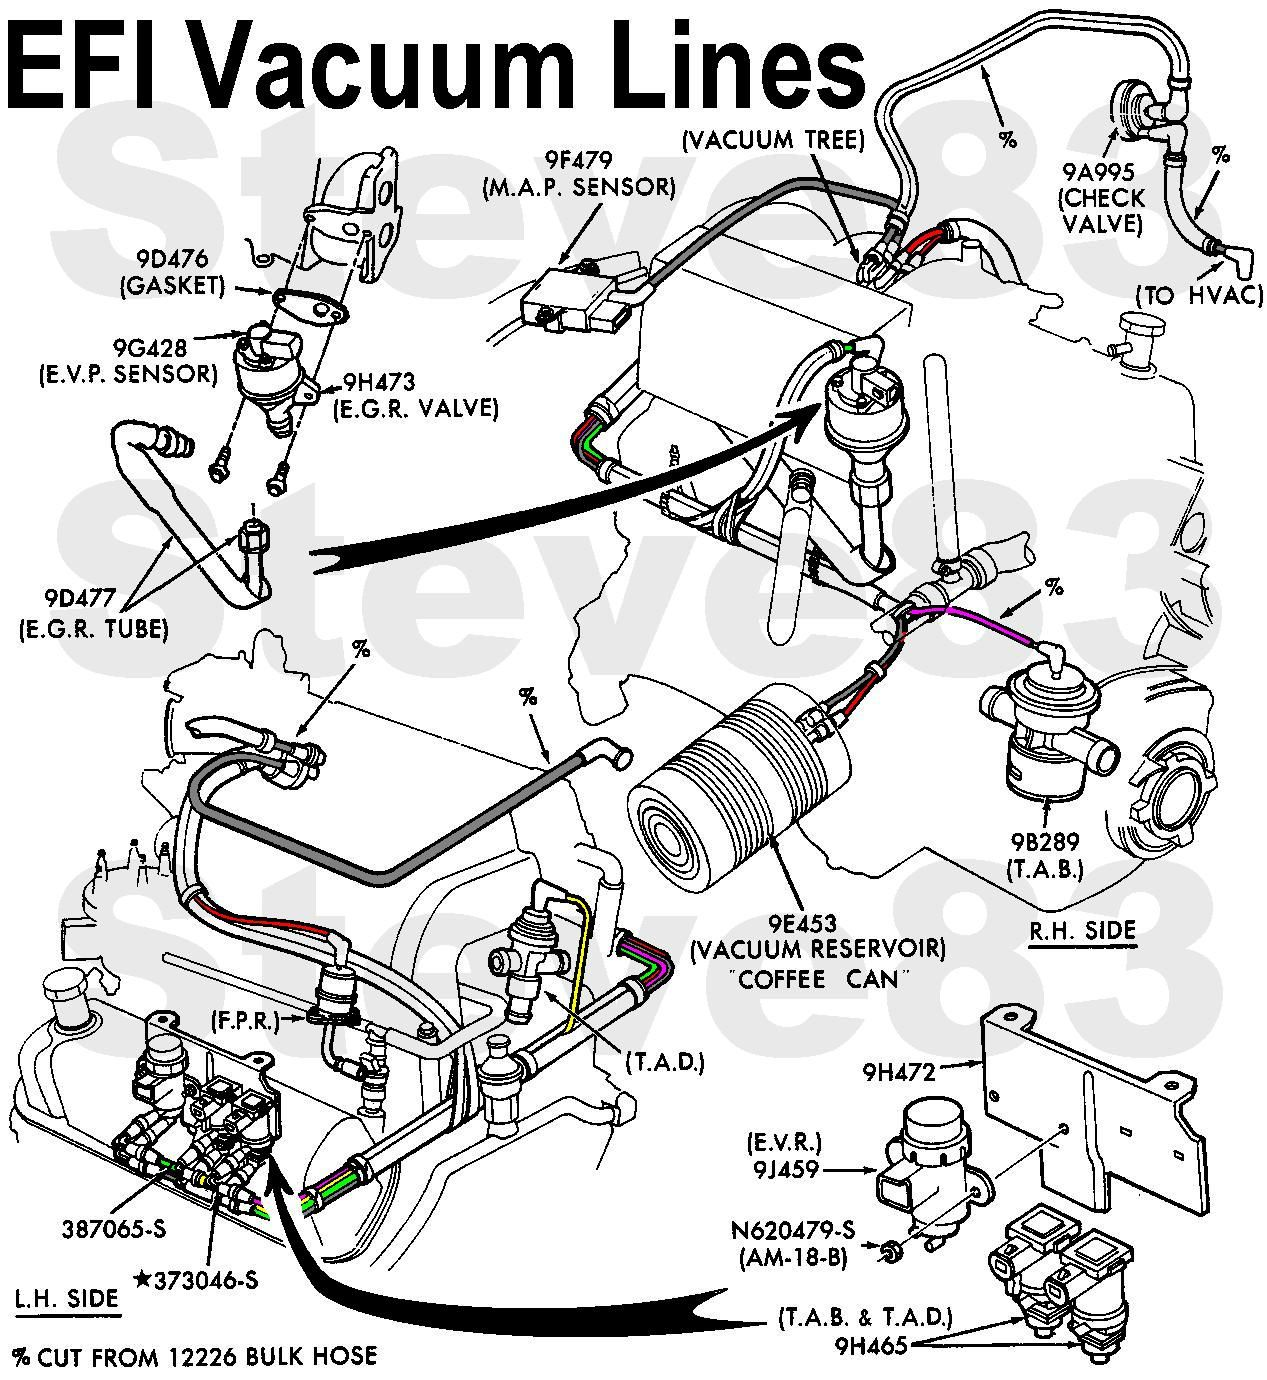 ford f150 engine diagram 1989 | 04 lariat 4x2 f150 stock 98 nascar edition  4x2 f150 | Electric car engine, Automotive mechanic, EngineeringPinterest